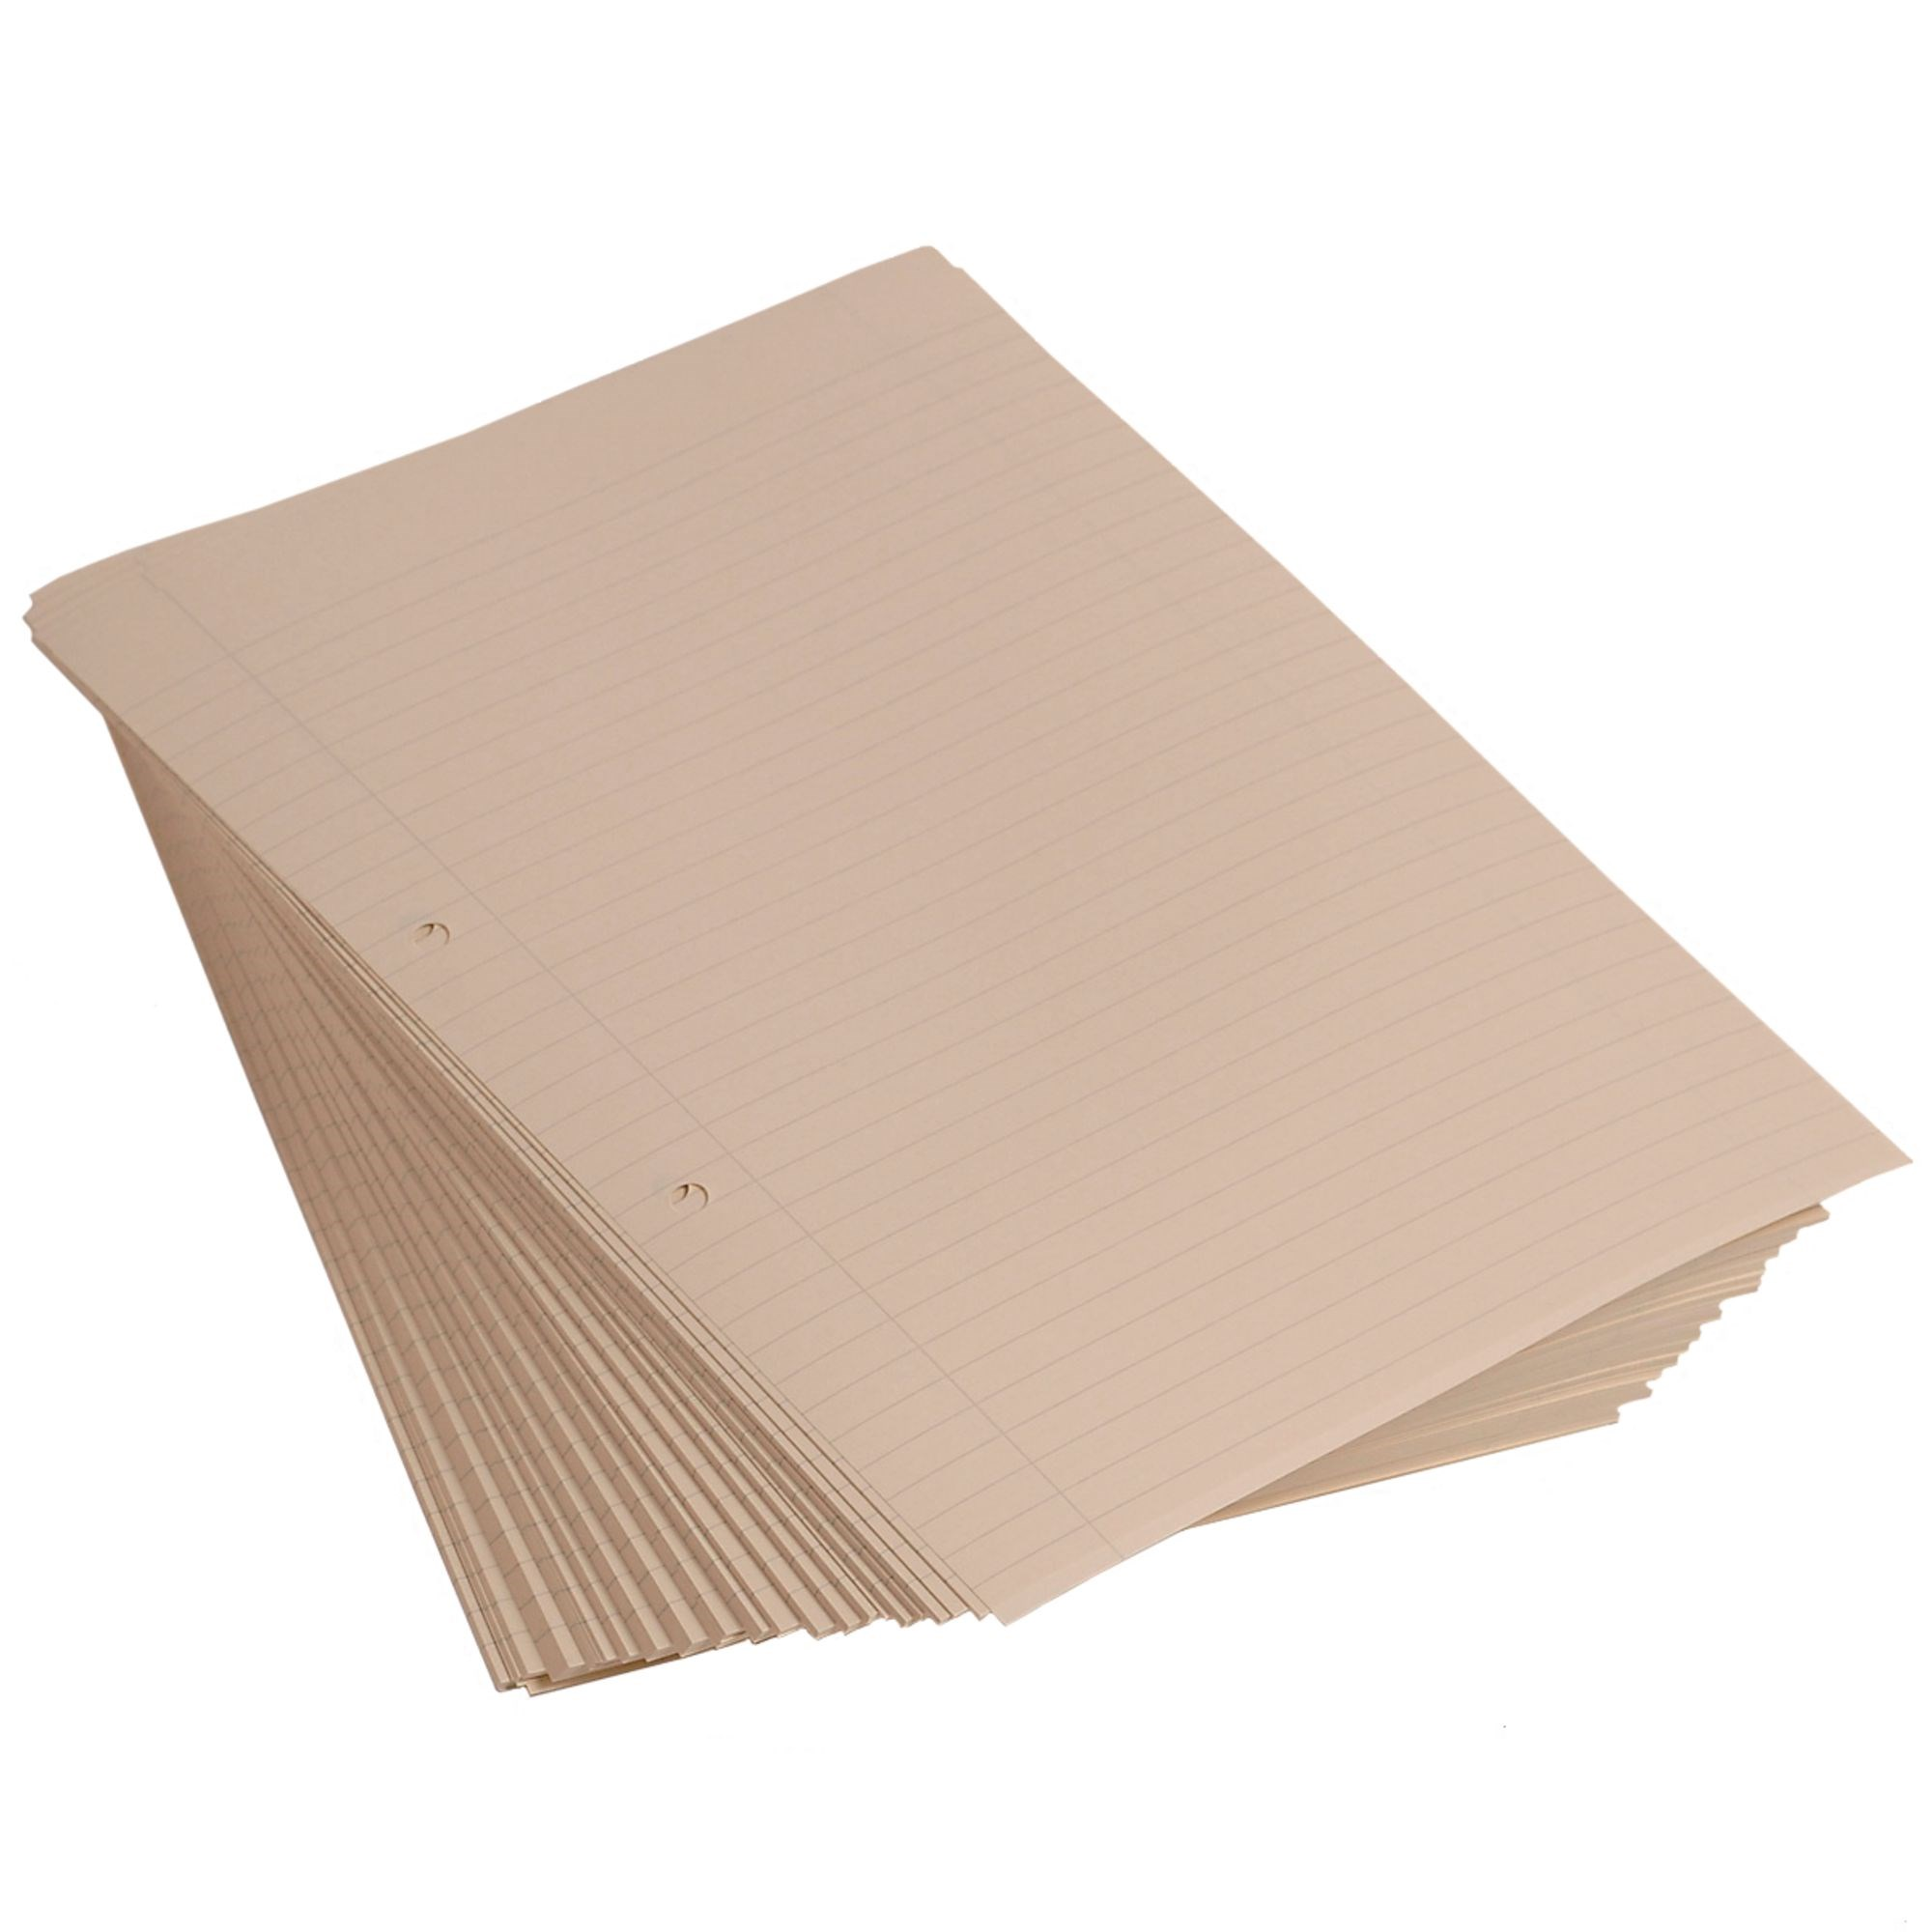 A4 Loose Leaf Cream Paper 8mm Ruled with Margin 2 Hole Punched (Pack of 500)